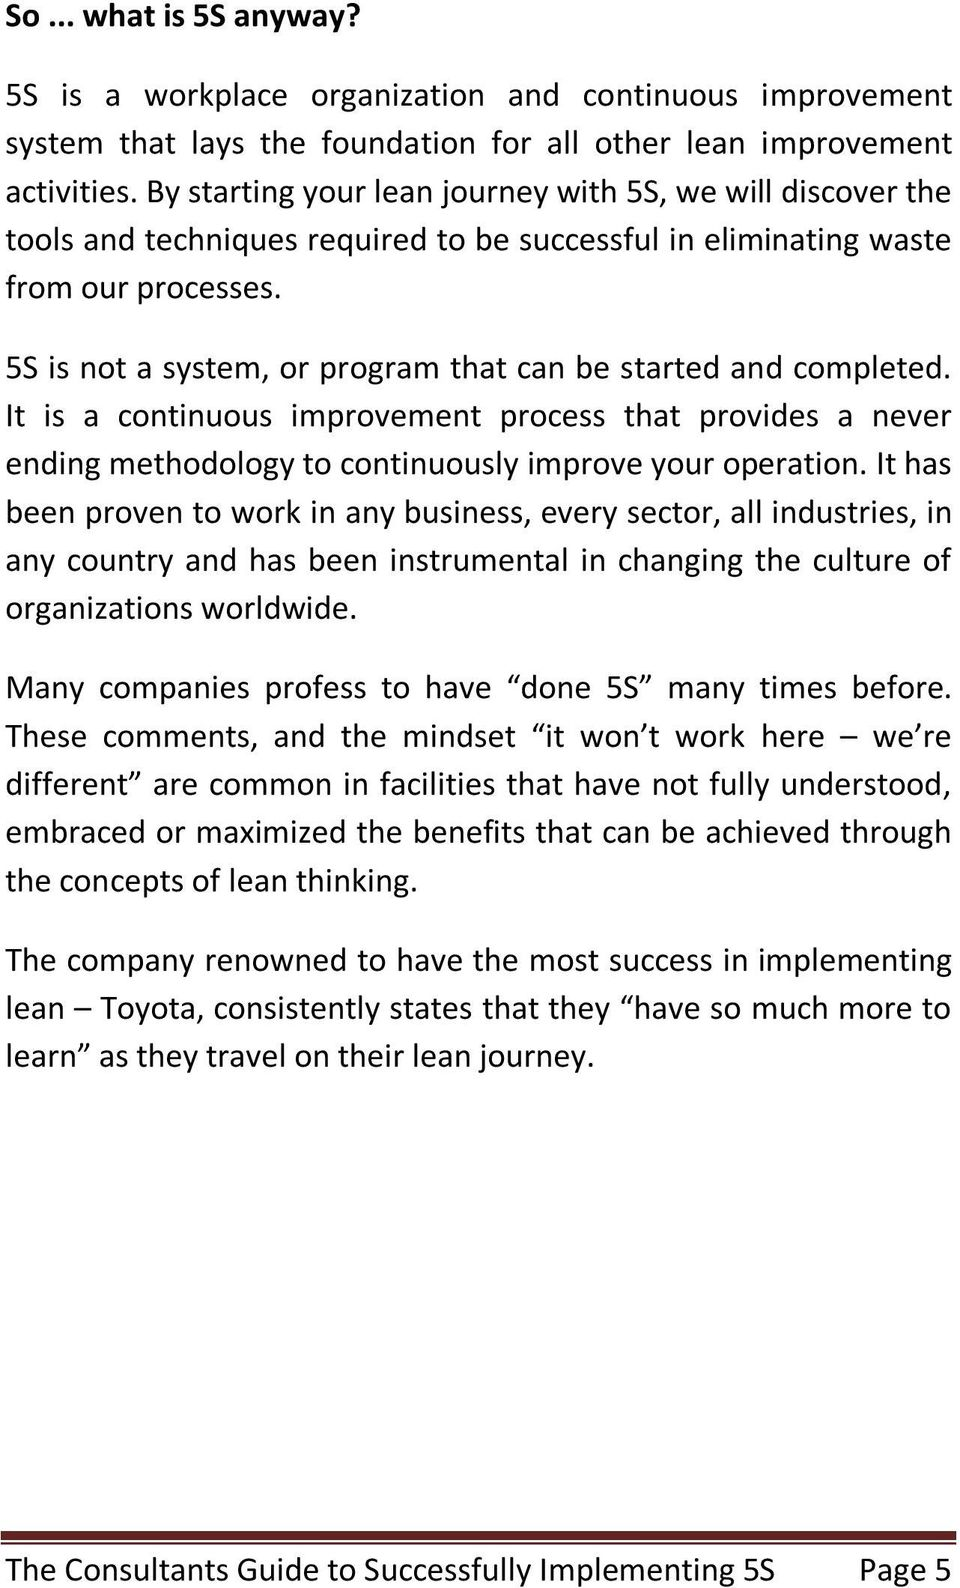 5S is not a system, or program that can be started and completed. It is a continuous improvement process that provides a never ending methodology to continuously improve your operation.